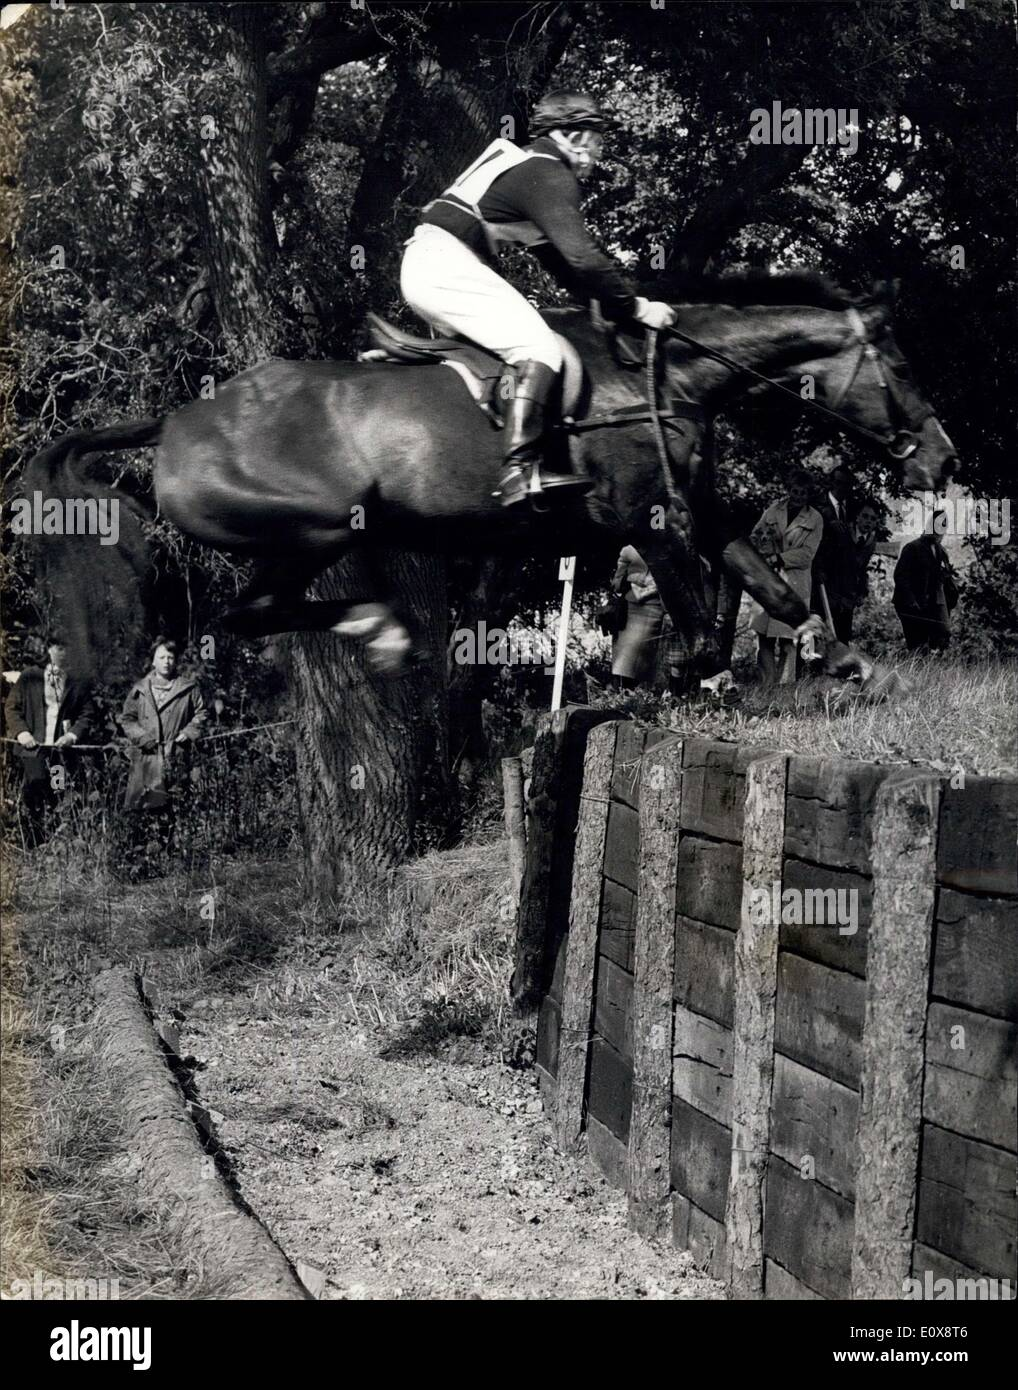 Sep. 10, 1965 - Burghley Three-Day Trials The Cross Country Event: Some of the finest horses and best riders in Britain were competing in the Three-Day Trials in the setting of Burghley Park, Lines., The Elizabethan home of the Marquess of Exeter. Yesterday. they were taking part in the Cross-Country event, negotiating 28 fixed fences over a four-mile course. Photo shows The Viking'' ridden by Mr, M. Tucker, seen taking the Sleeper Bank Jump during the Cross Country event. - Stock Image